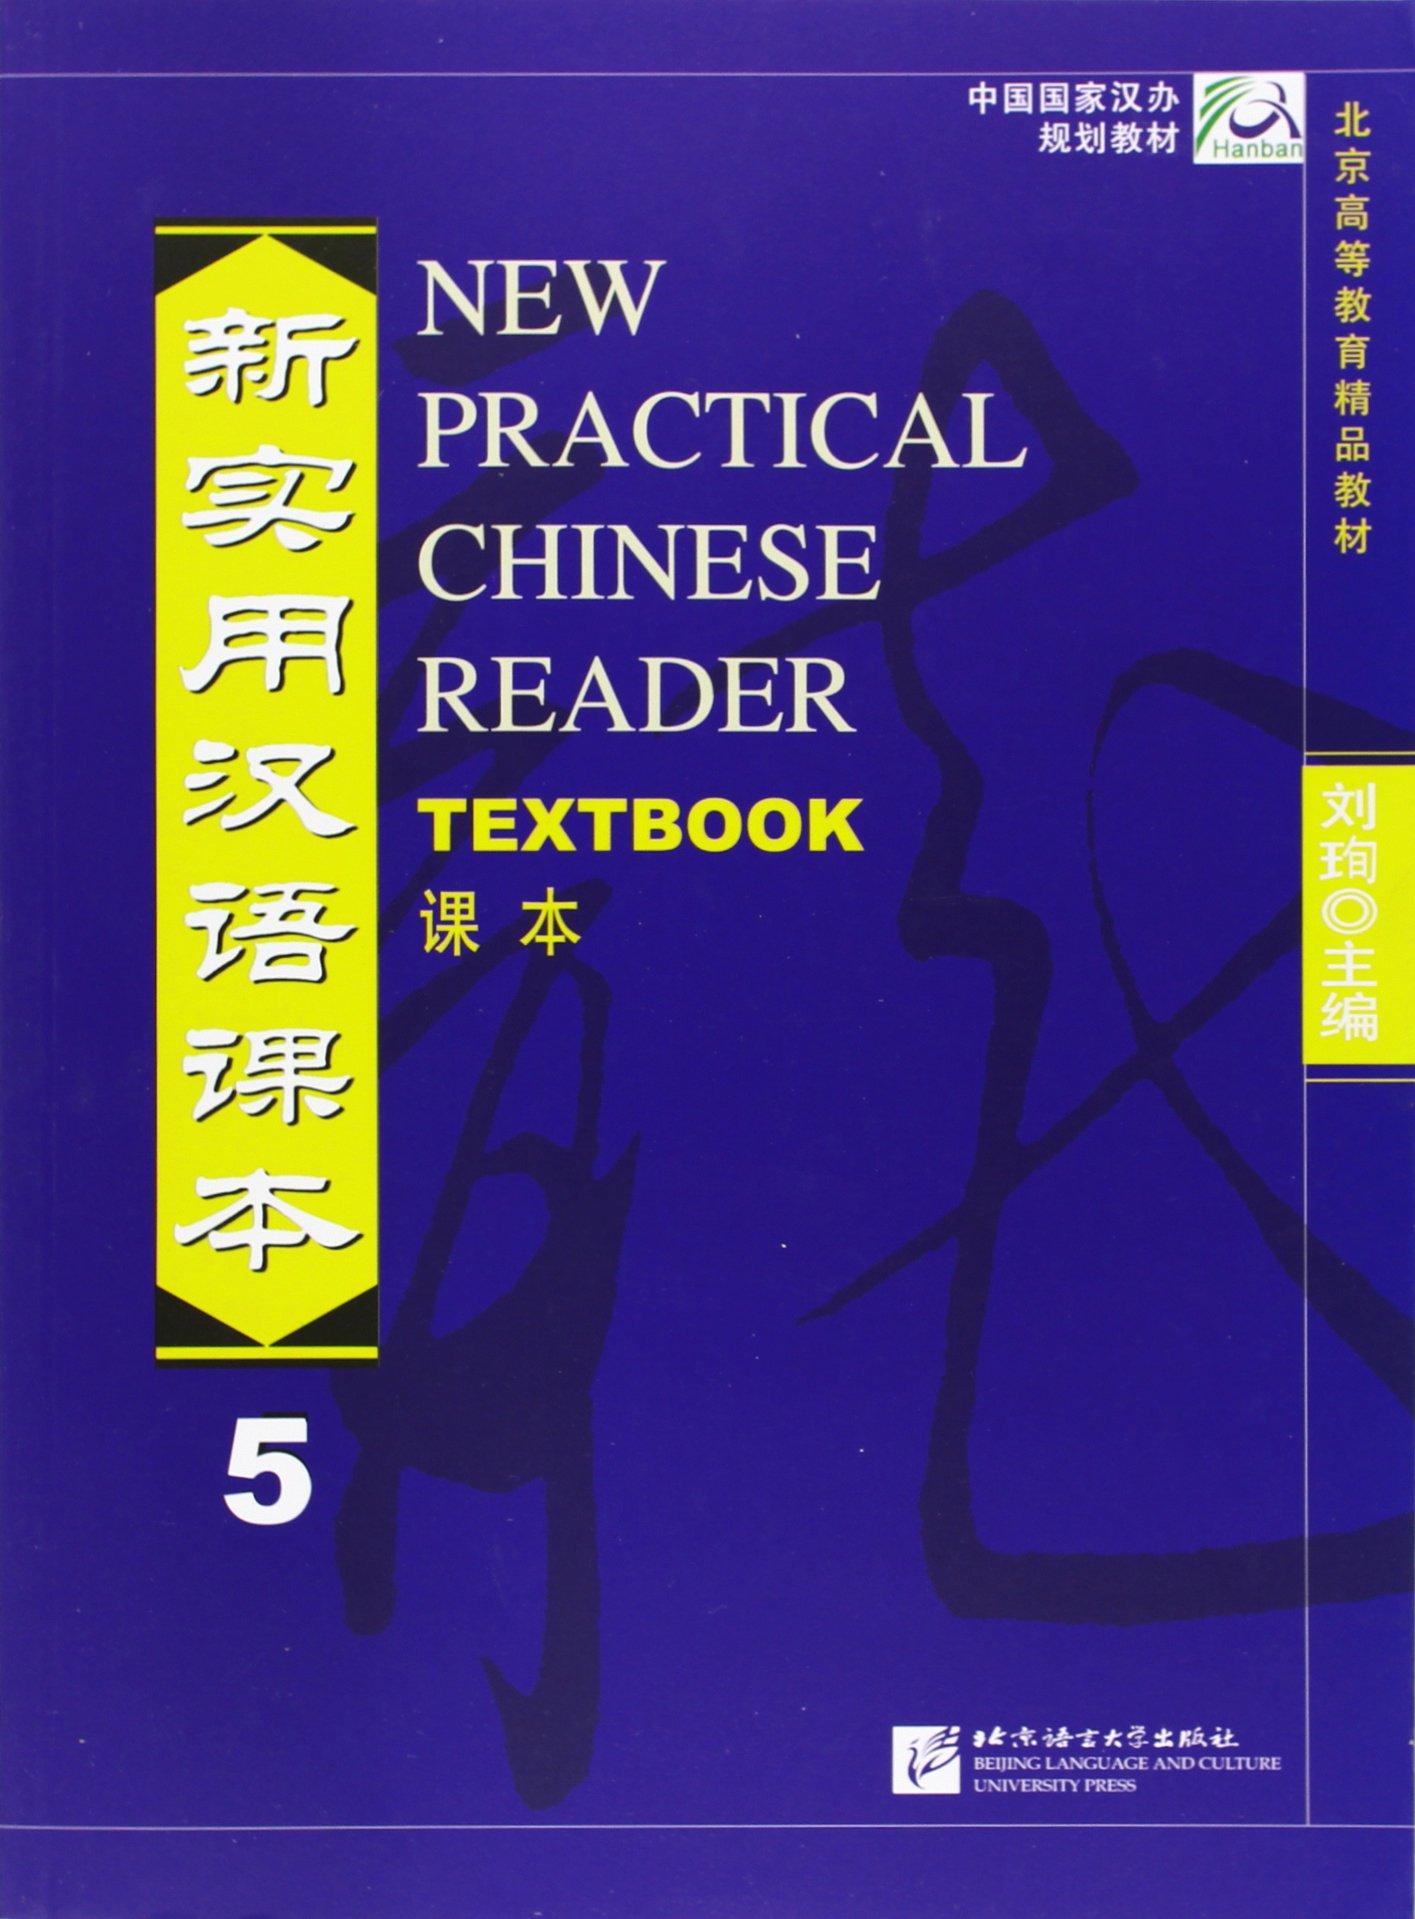 New practical chinese reader textbook 5 v 5 chinese edition new practical chinese reader textbook 5 v 5 chinese edition liu xun 9787561914083 amazon books fandeluxe Gallery